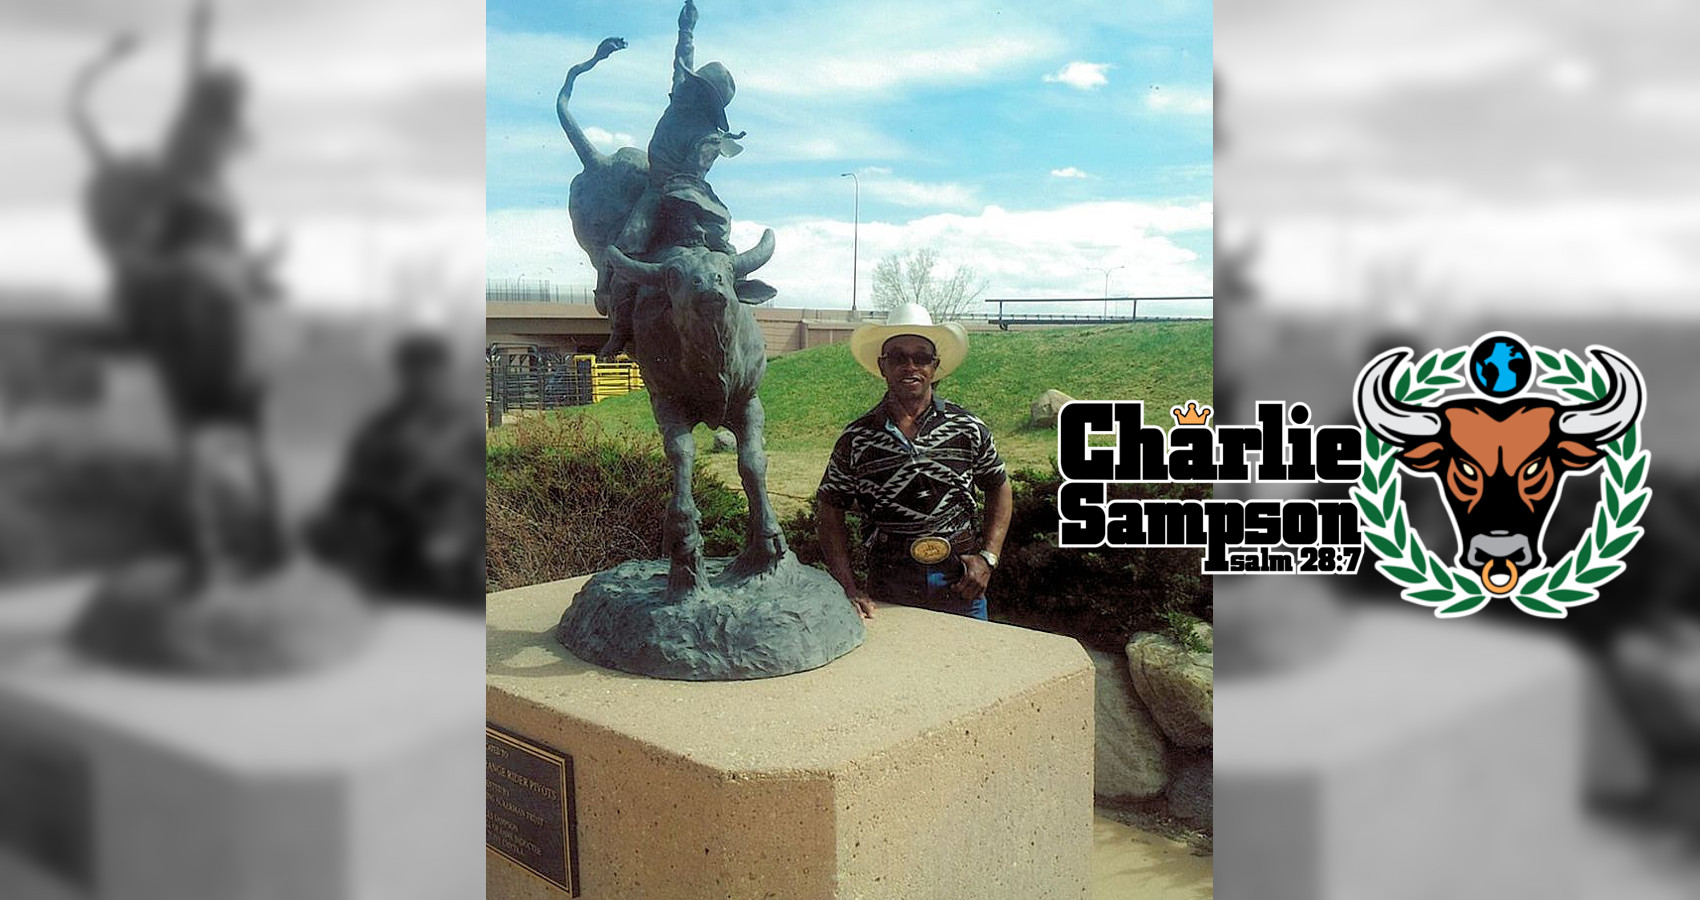 Charlie Sampson taking a picture next to his bronze in the PRCA Hall of Fame Garden in 2014